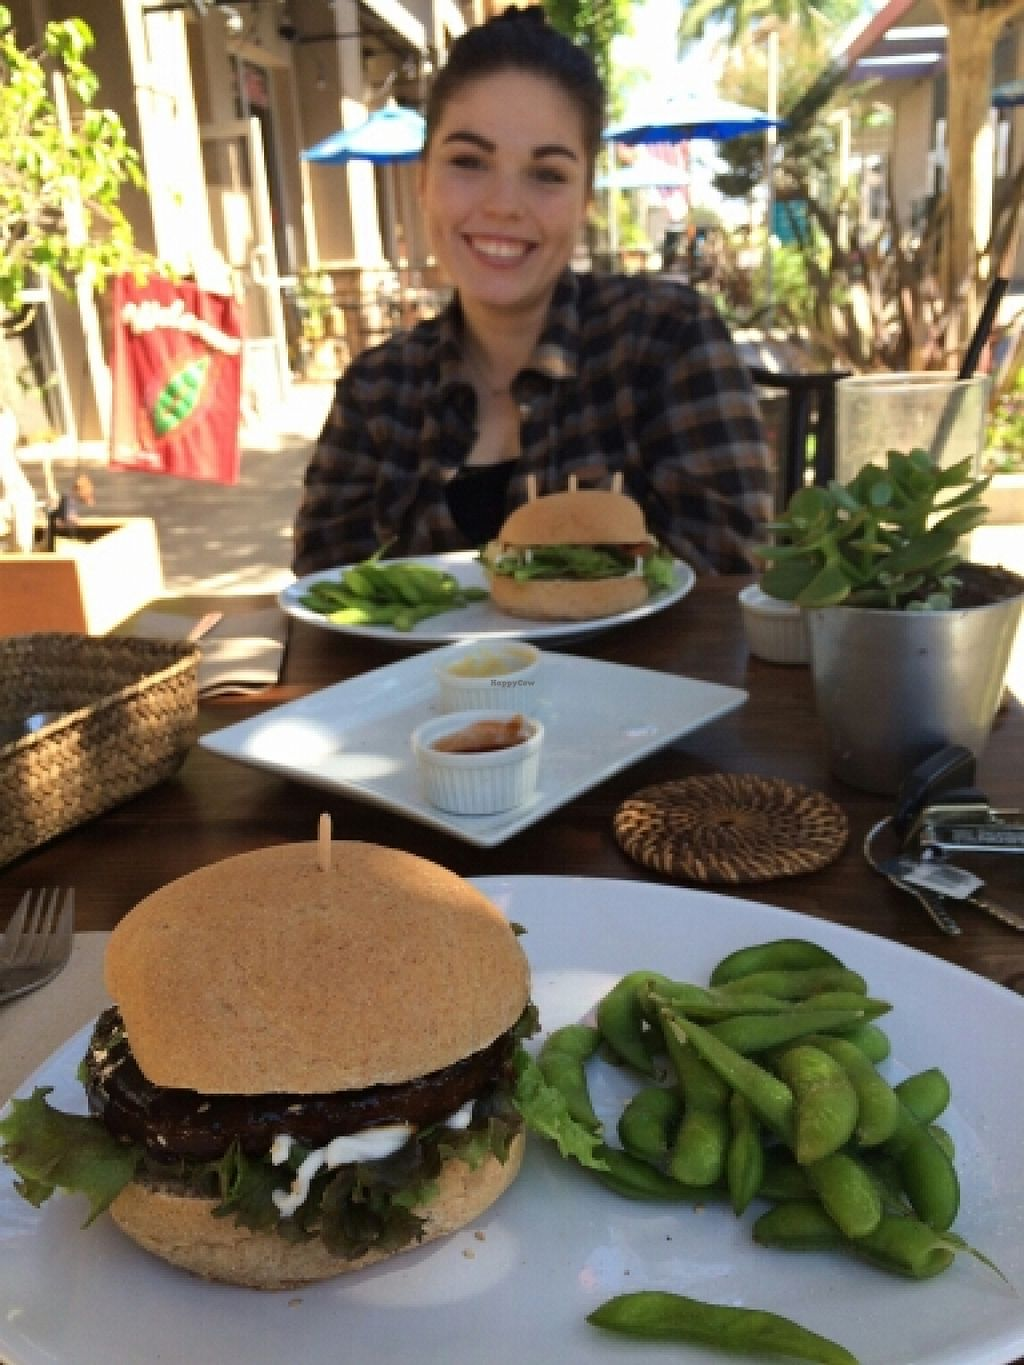 """Photo of VegiLicious  by <a href=""""/members/profile/yourmoderndayhippie"""">yourmoderndayhippie</a> <br/>Teriyaki burger with edamame <br/> March 22, 2016  - <a href='/contact/abuse/image/36781/140937'>Report</a>"""